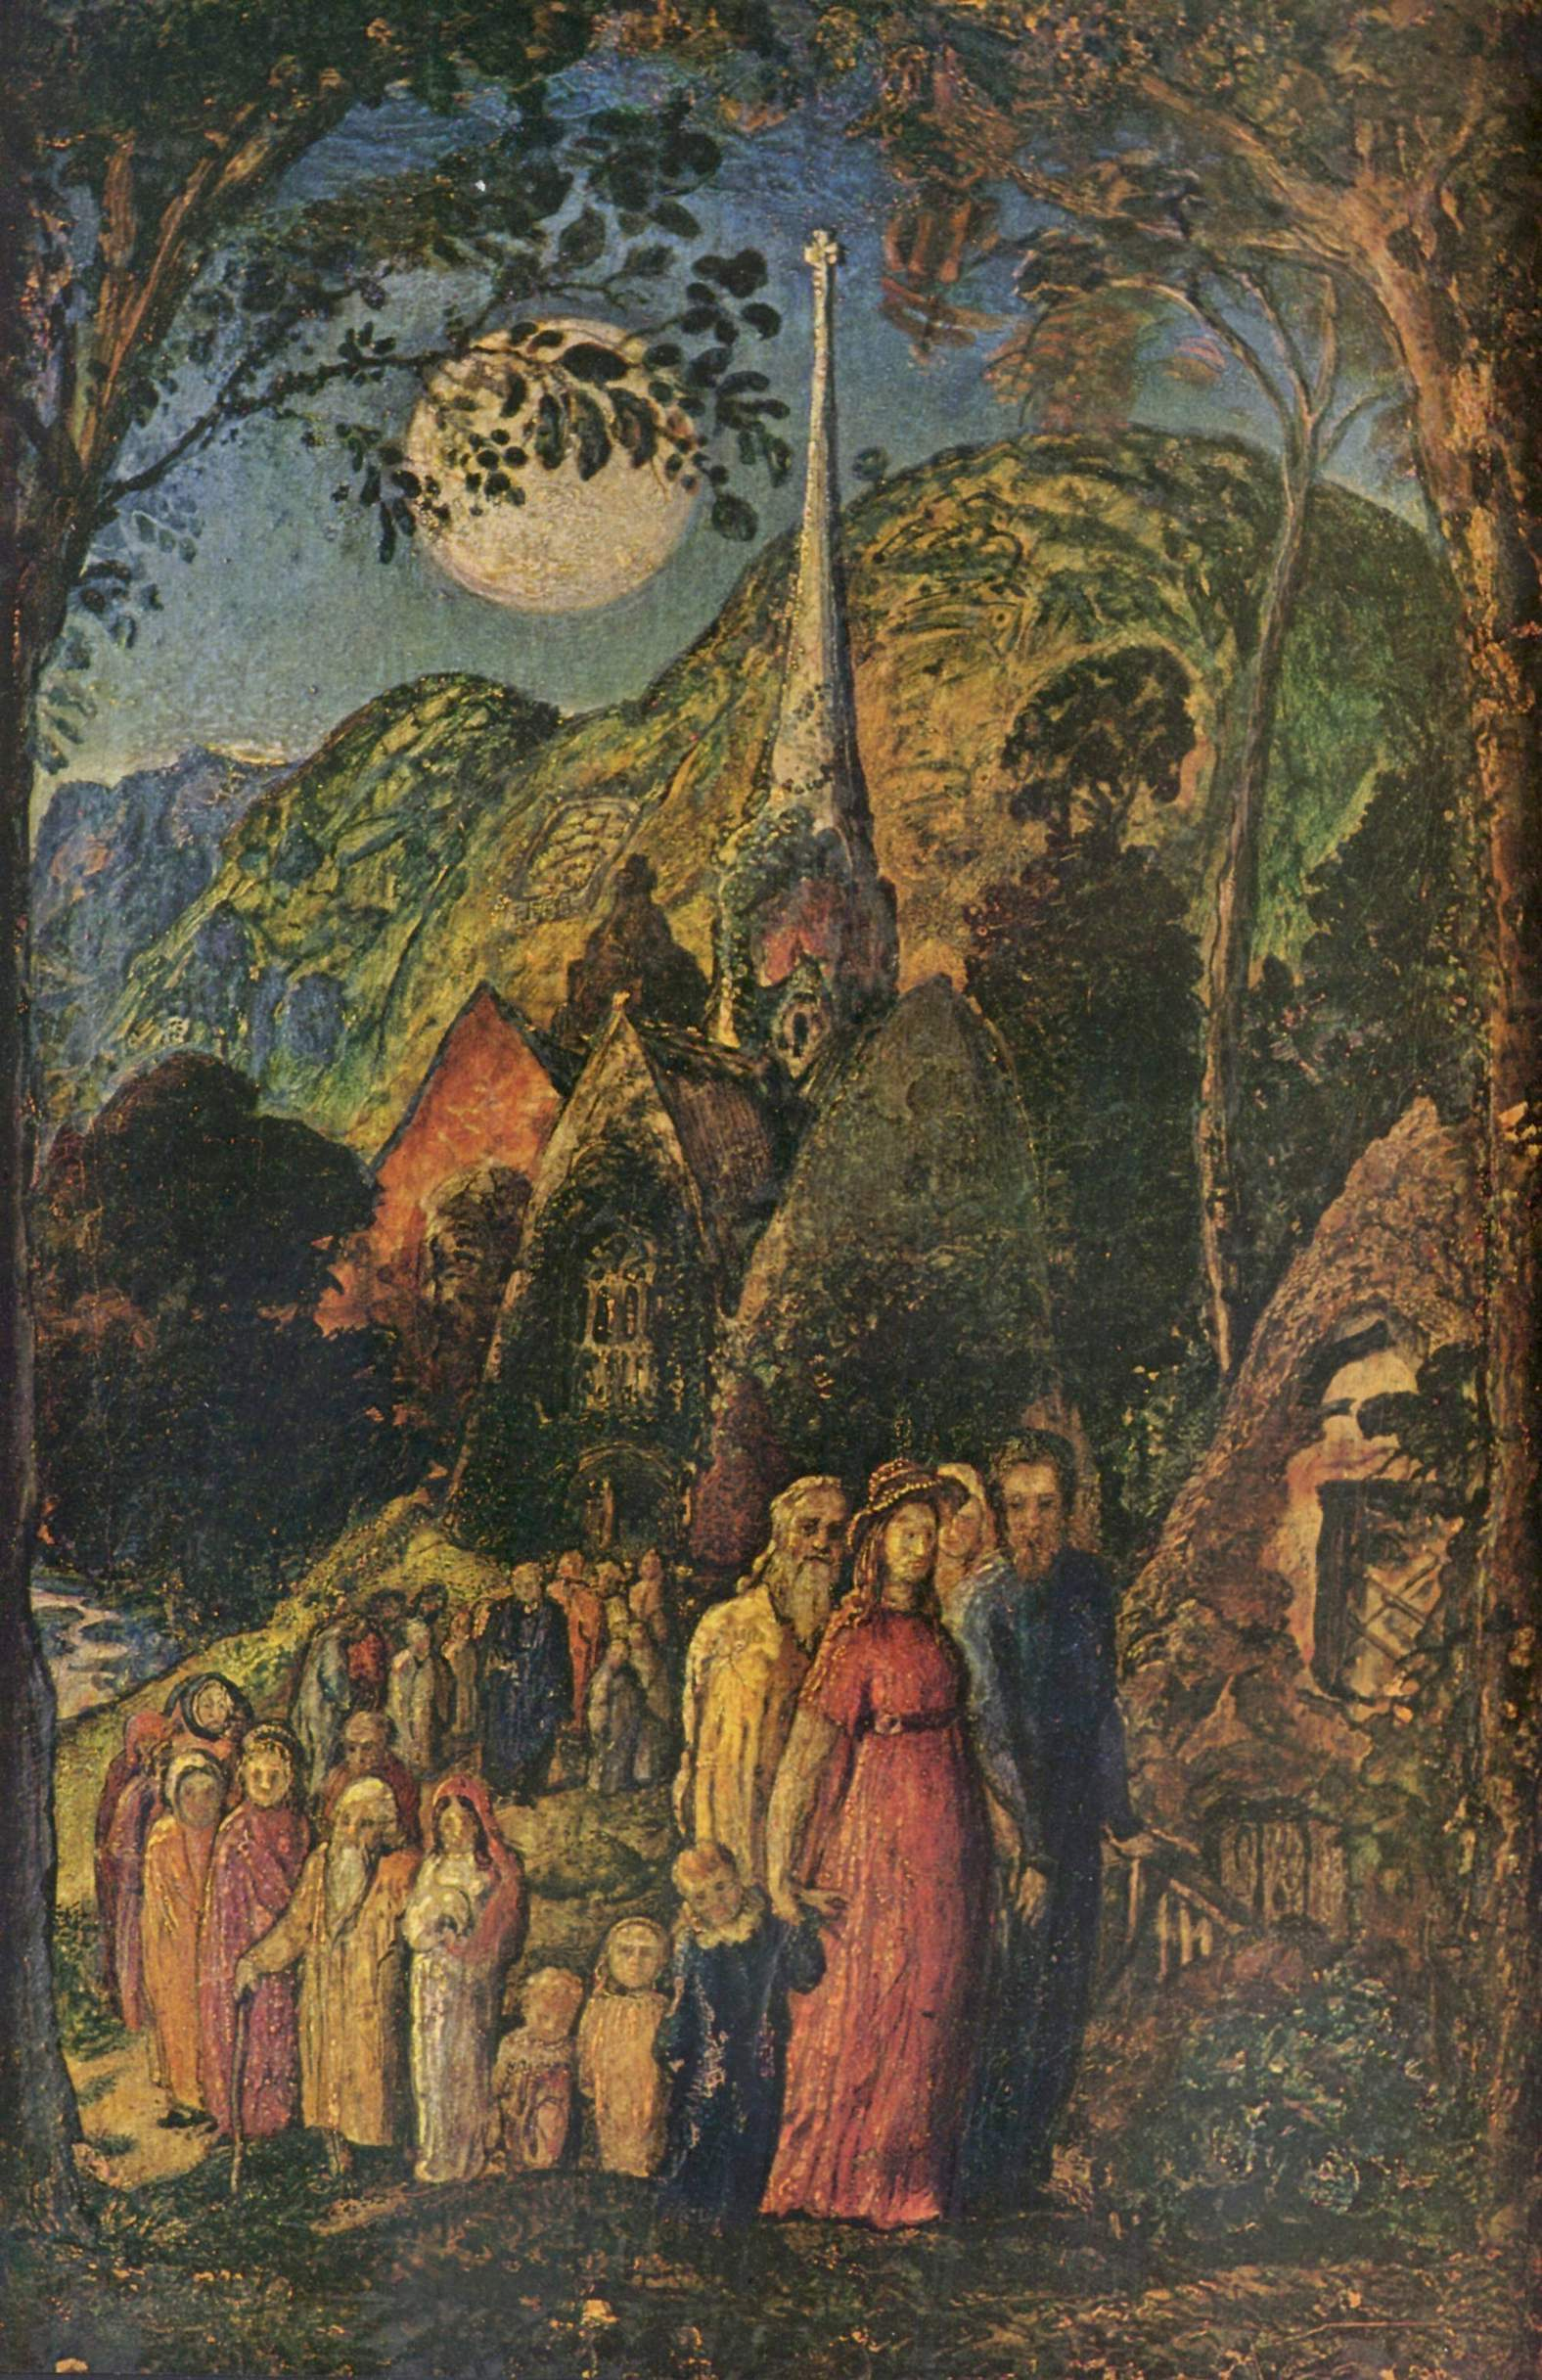 https://upload.wikimedia.org/wikipedia/commons/3/3a/Samuel_Palmer_005.jpg